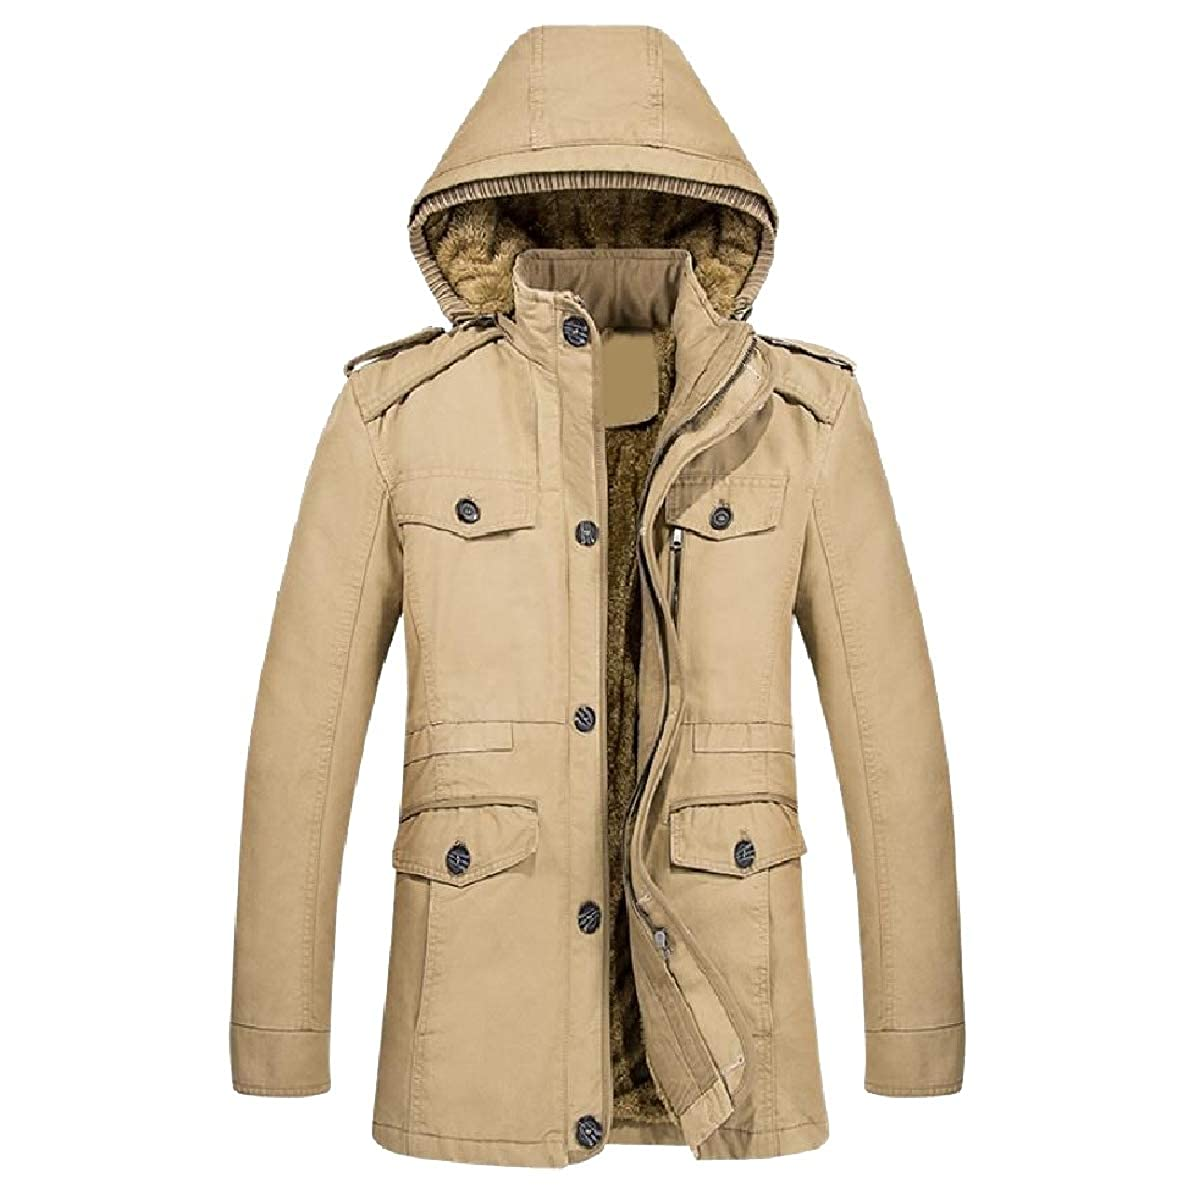 YUNY Mens Warm Cotton Winter Hooded Oversized Parka Coats Jackets Khaki S